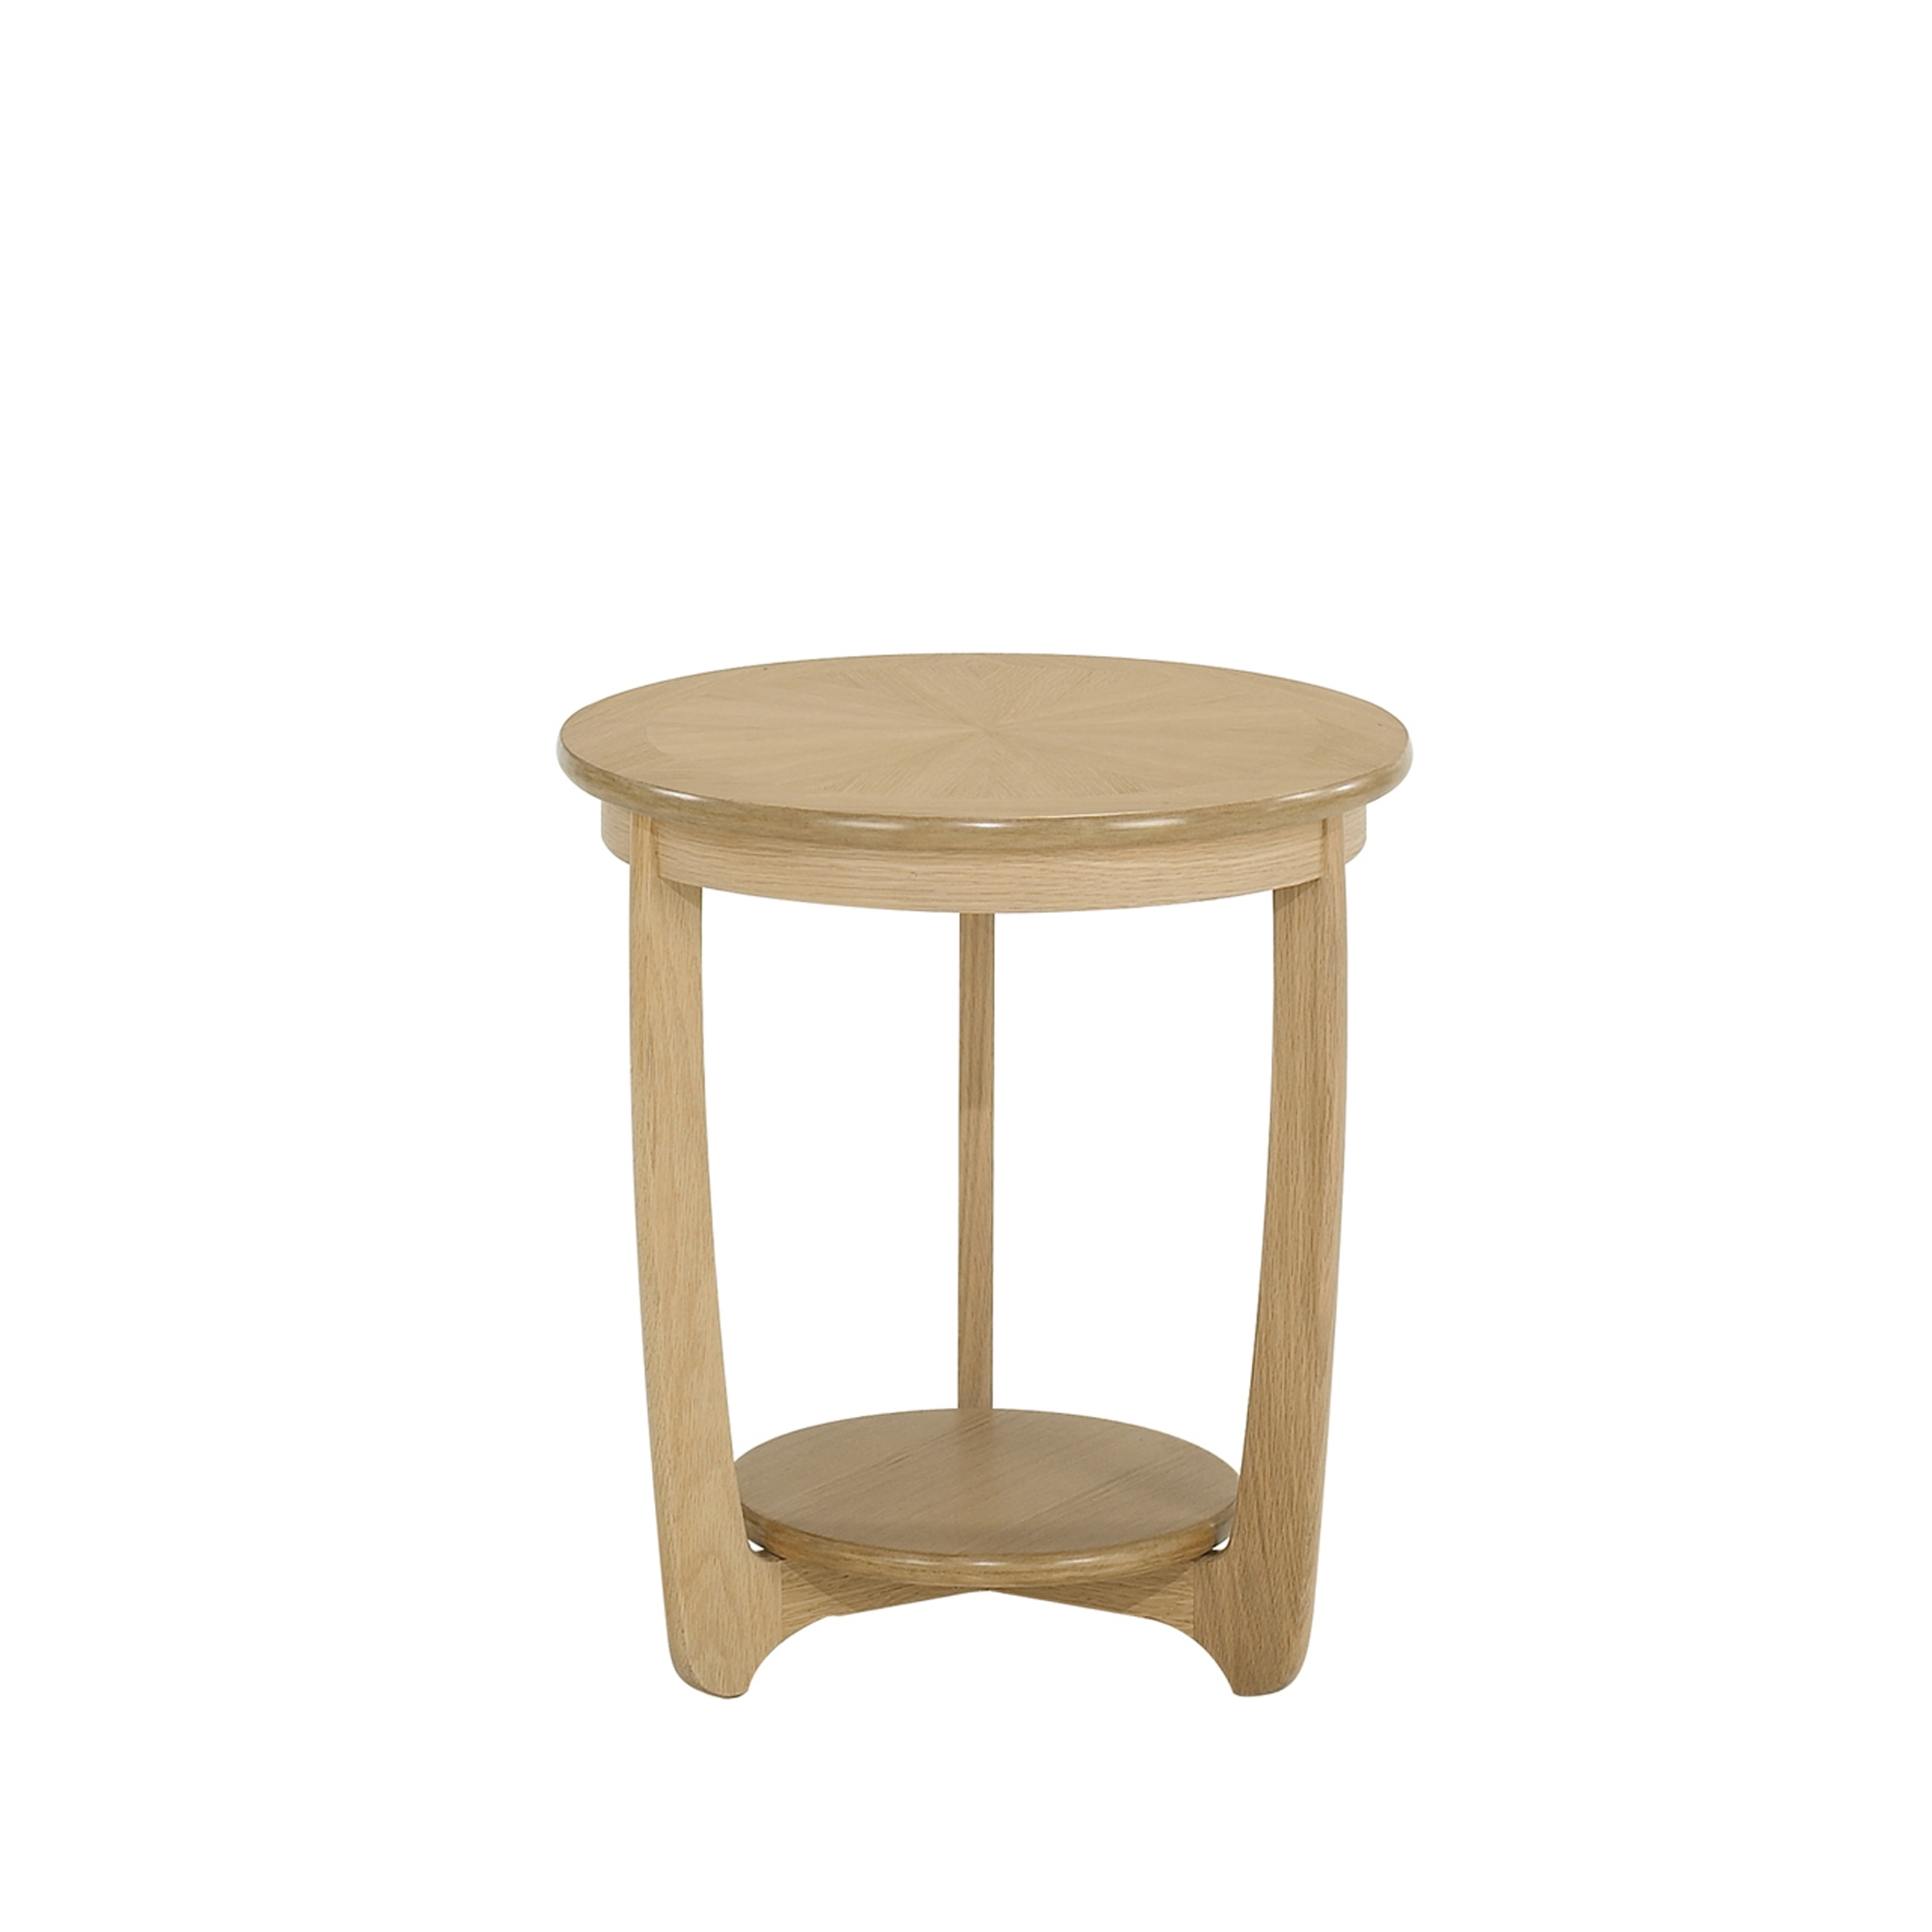 Nathan Shades Oak Sunburst Round Lamp Table Side Tables Cookes